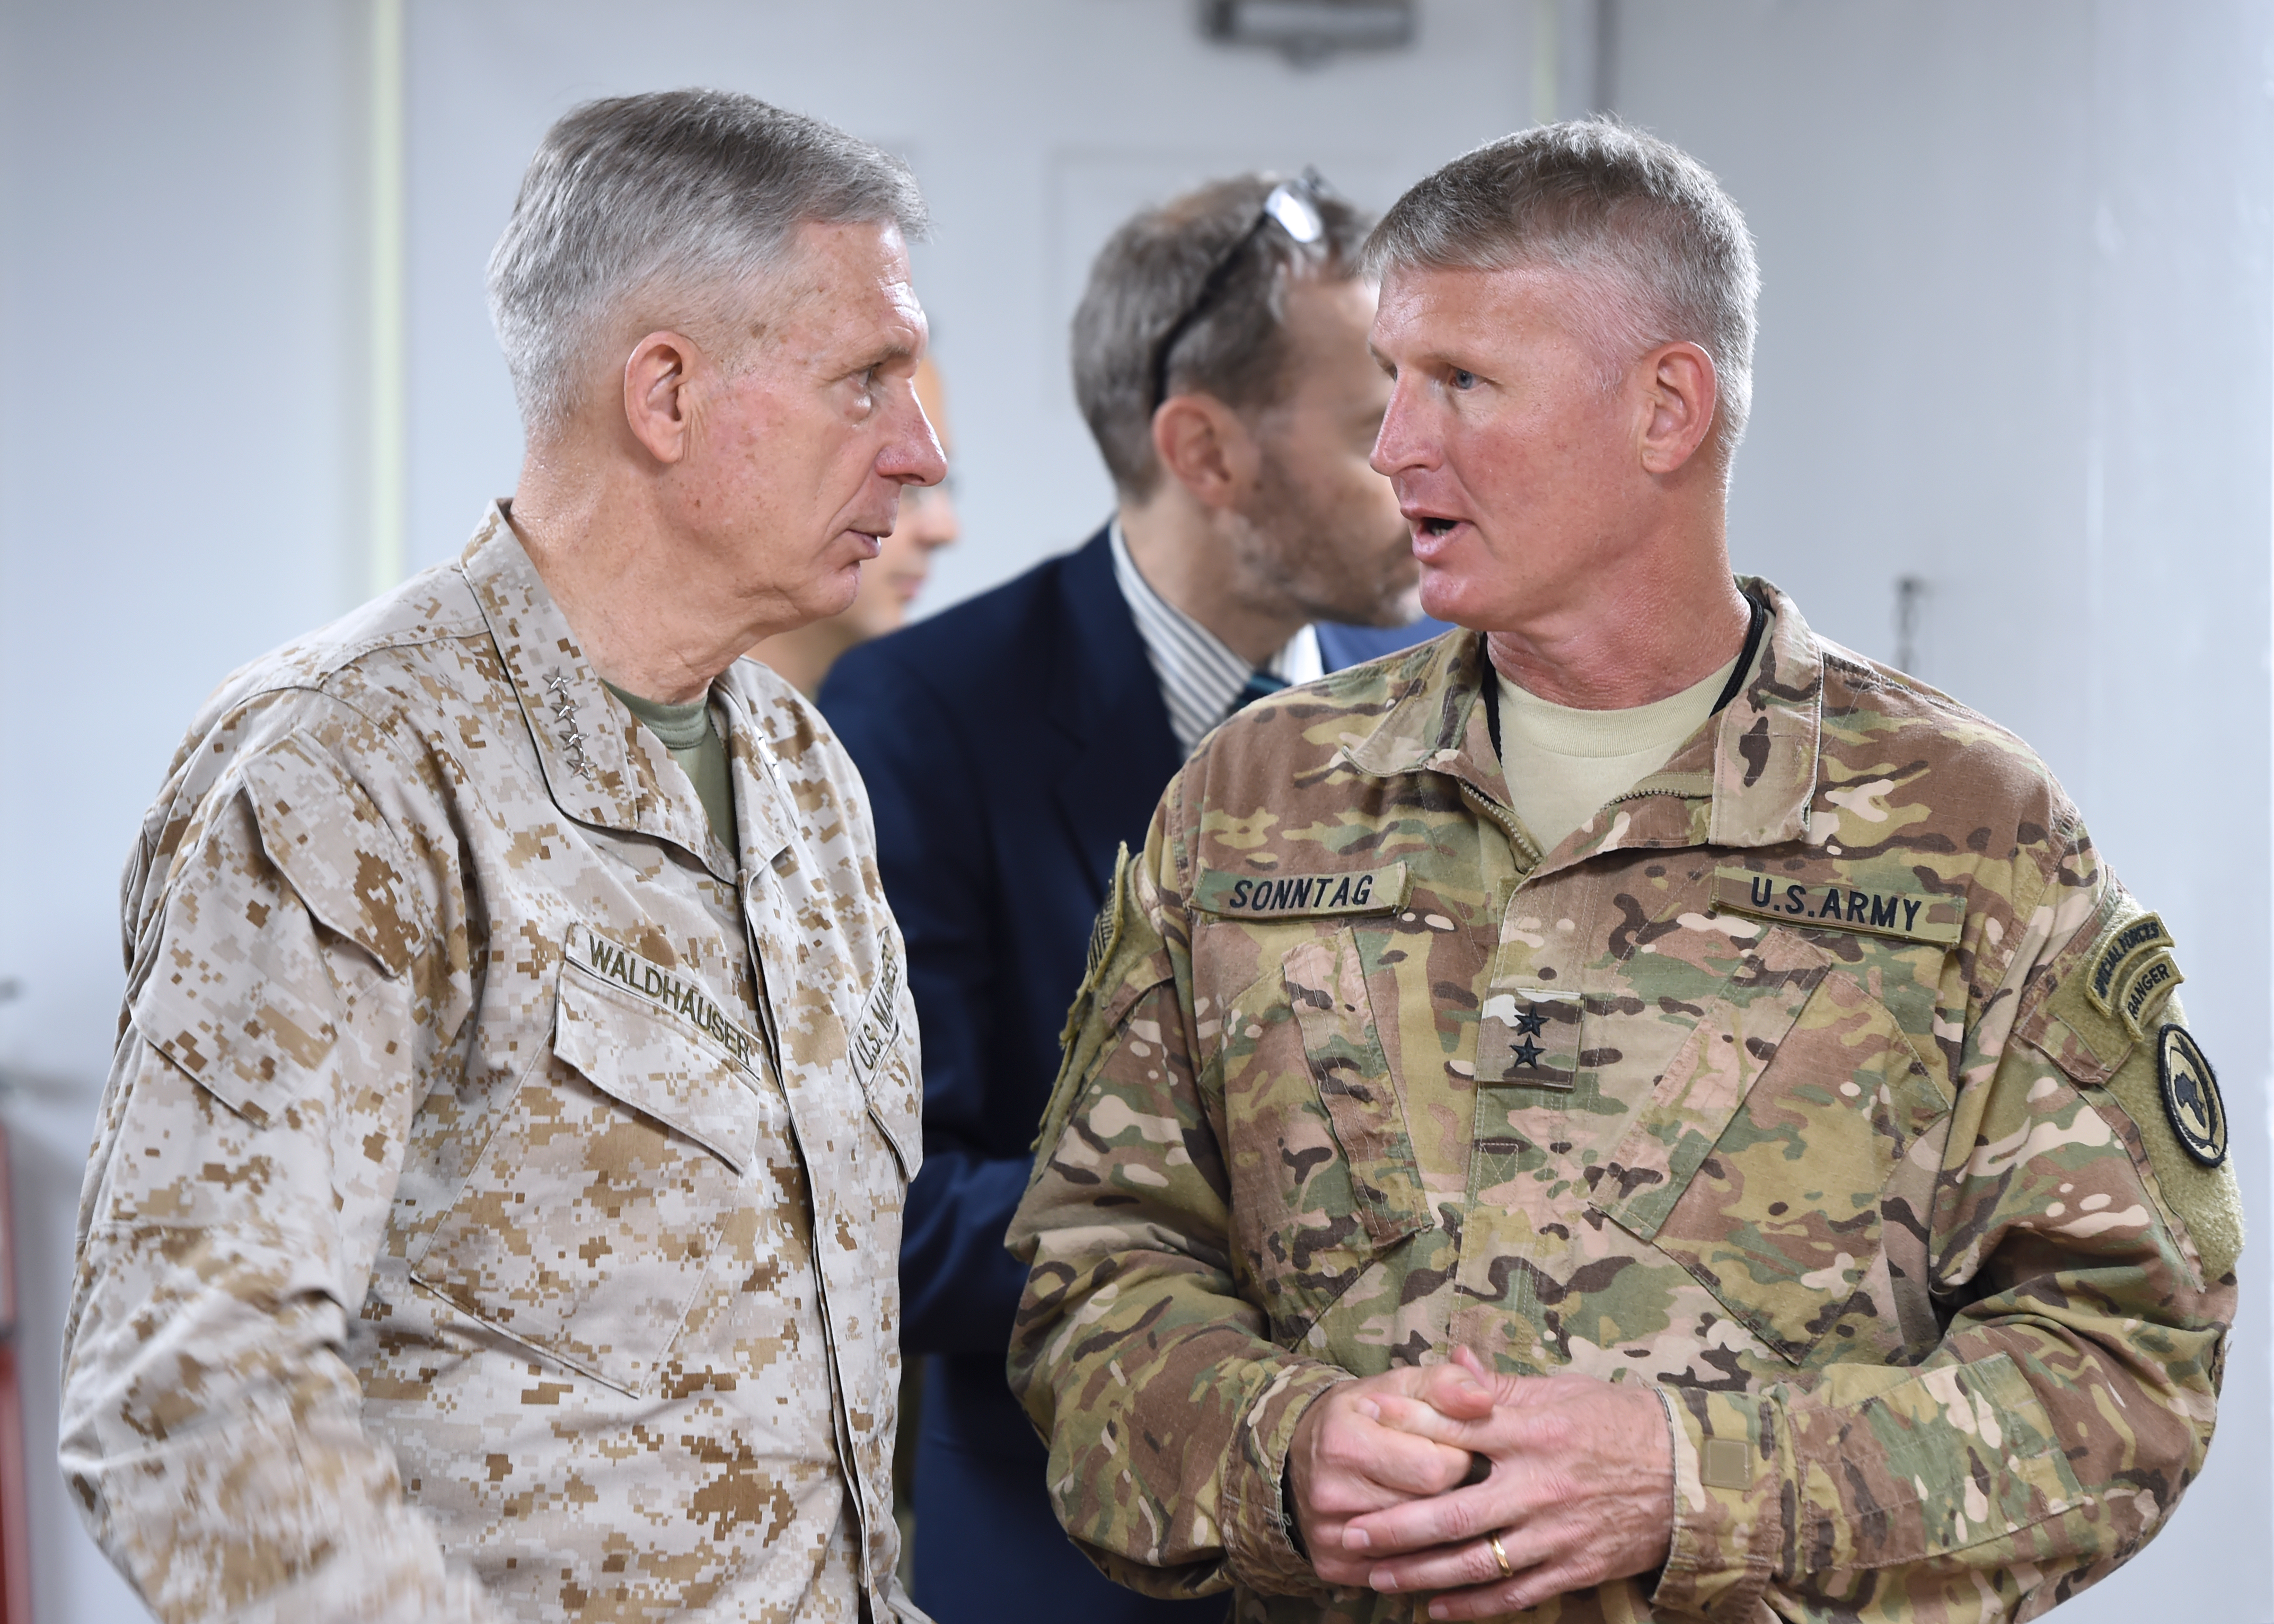 Gen. Thomas Waldhauser, commander of U.S. Africa Command and Combined Joint Task Force-Horn of Africa Commanding General Maj. Gen. Kurt Sonntag converse during the 2017 East Africa Security Synchronization Conference at Camp Lemonnier, Djibouti, Jan. 24. The two-day event allowed U.S. Embassy representatives from eight East African nations to engage with AFRICOM leadership, and provided the opportunity for an open dialogue to discuss the security environments of each country. (U.S. Air National Guard photo by Master Sgt. Paul Gorman)